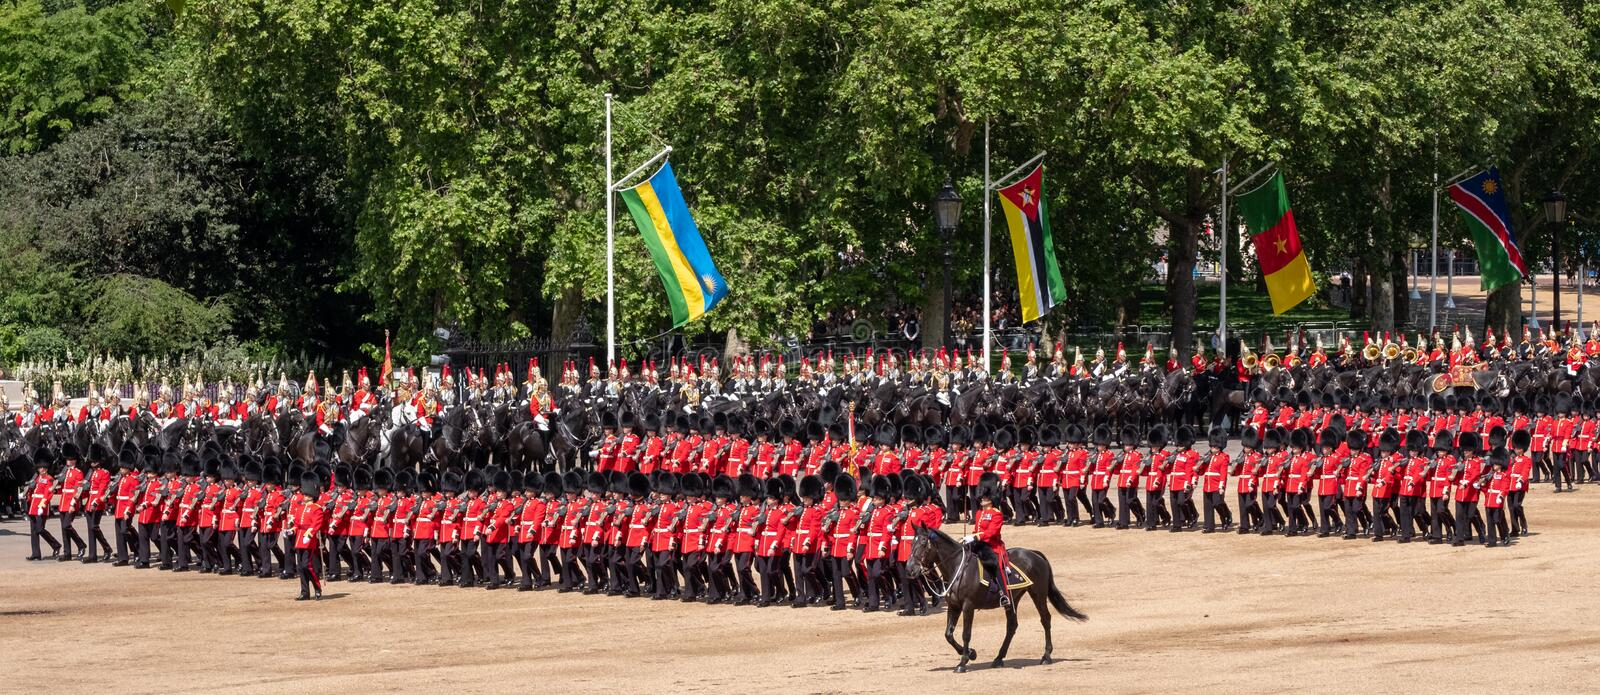 Wide angle view of the Trooping the Colour military parade at Horse Guards Parade, London UK, with Household Division soldiers. stock images